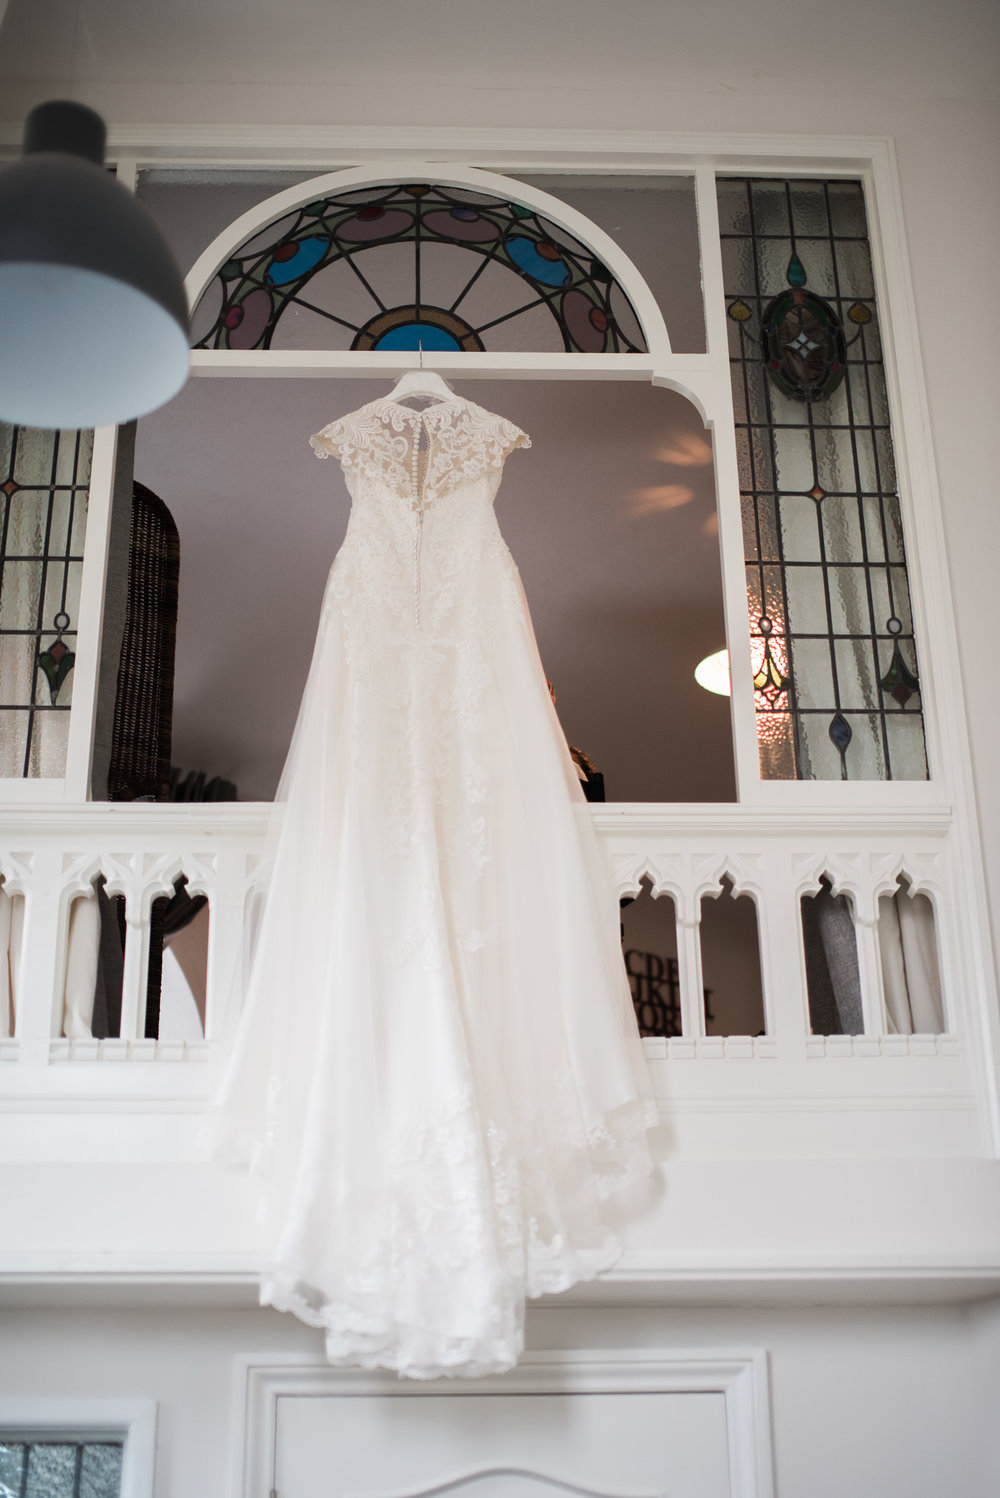 Full length shot of wedding dress hung from a window in the Dreamcatcher.